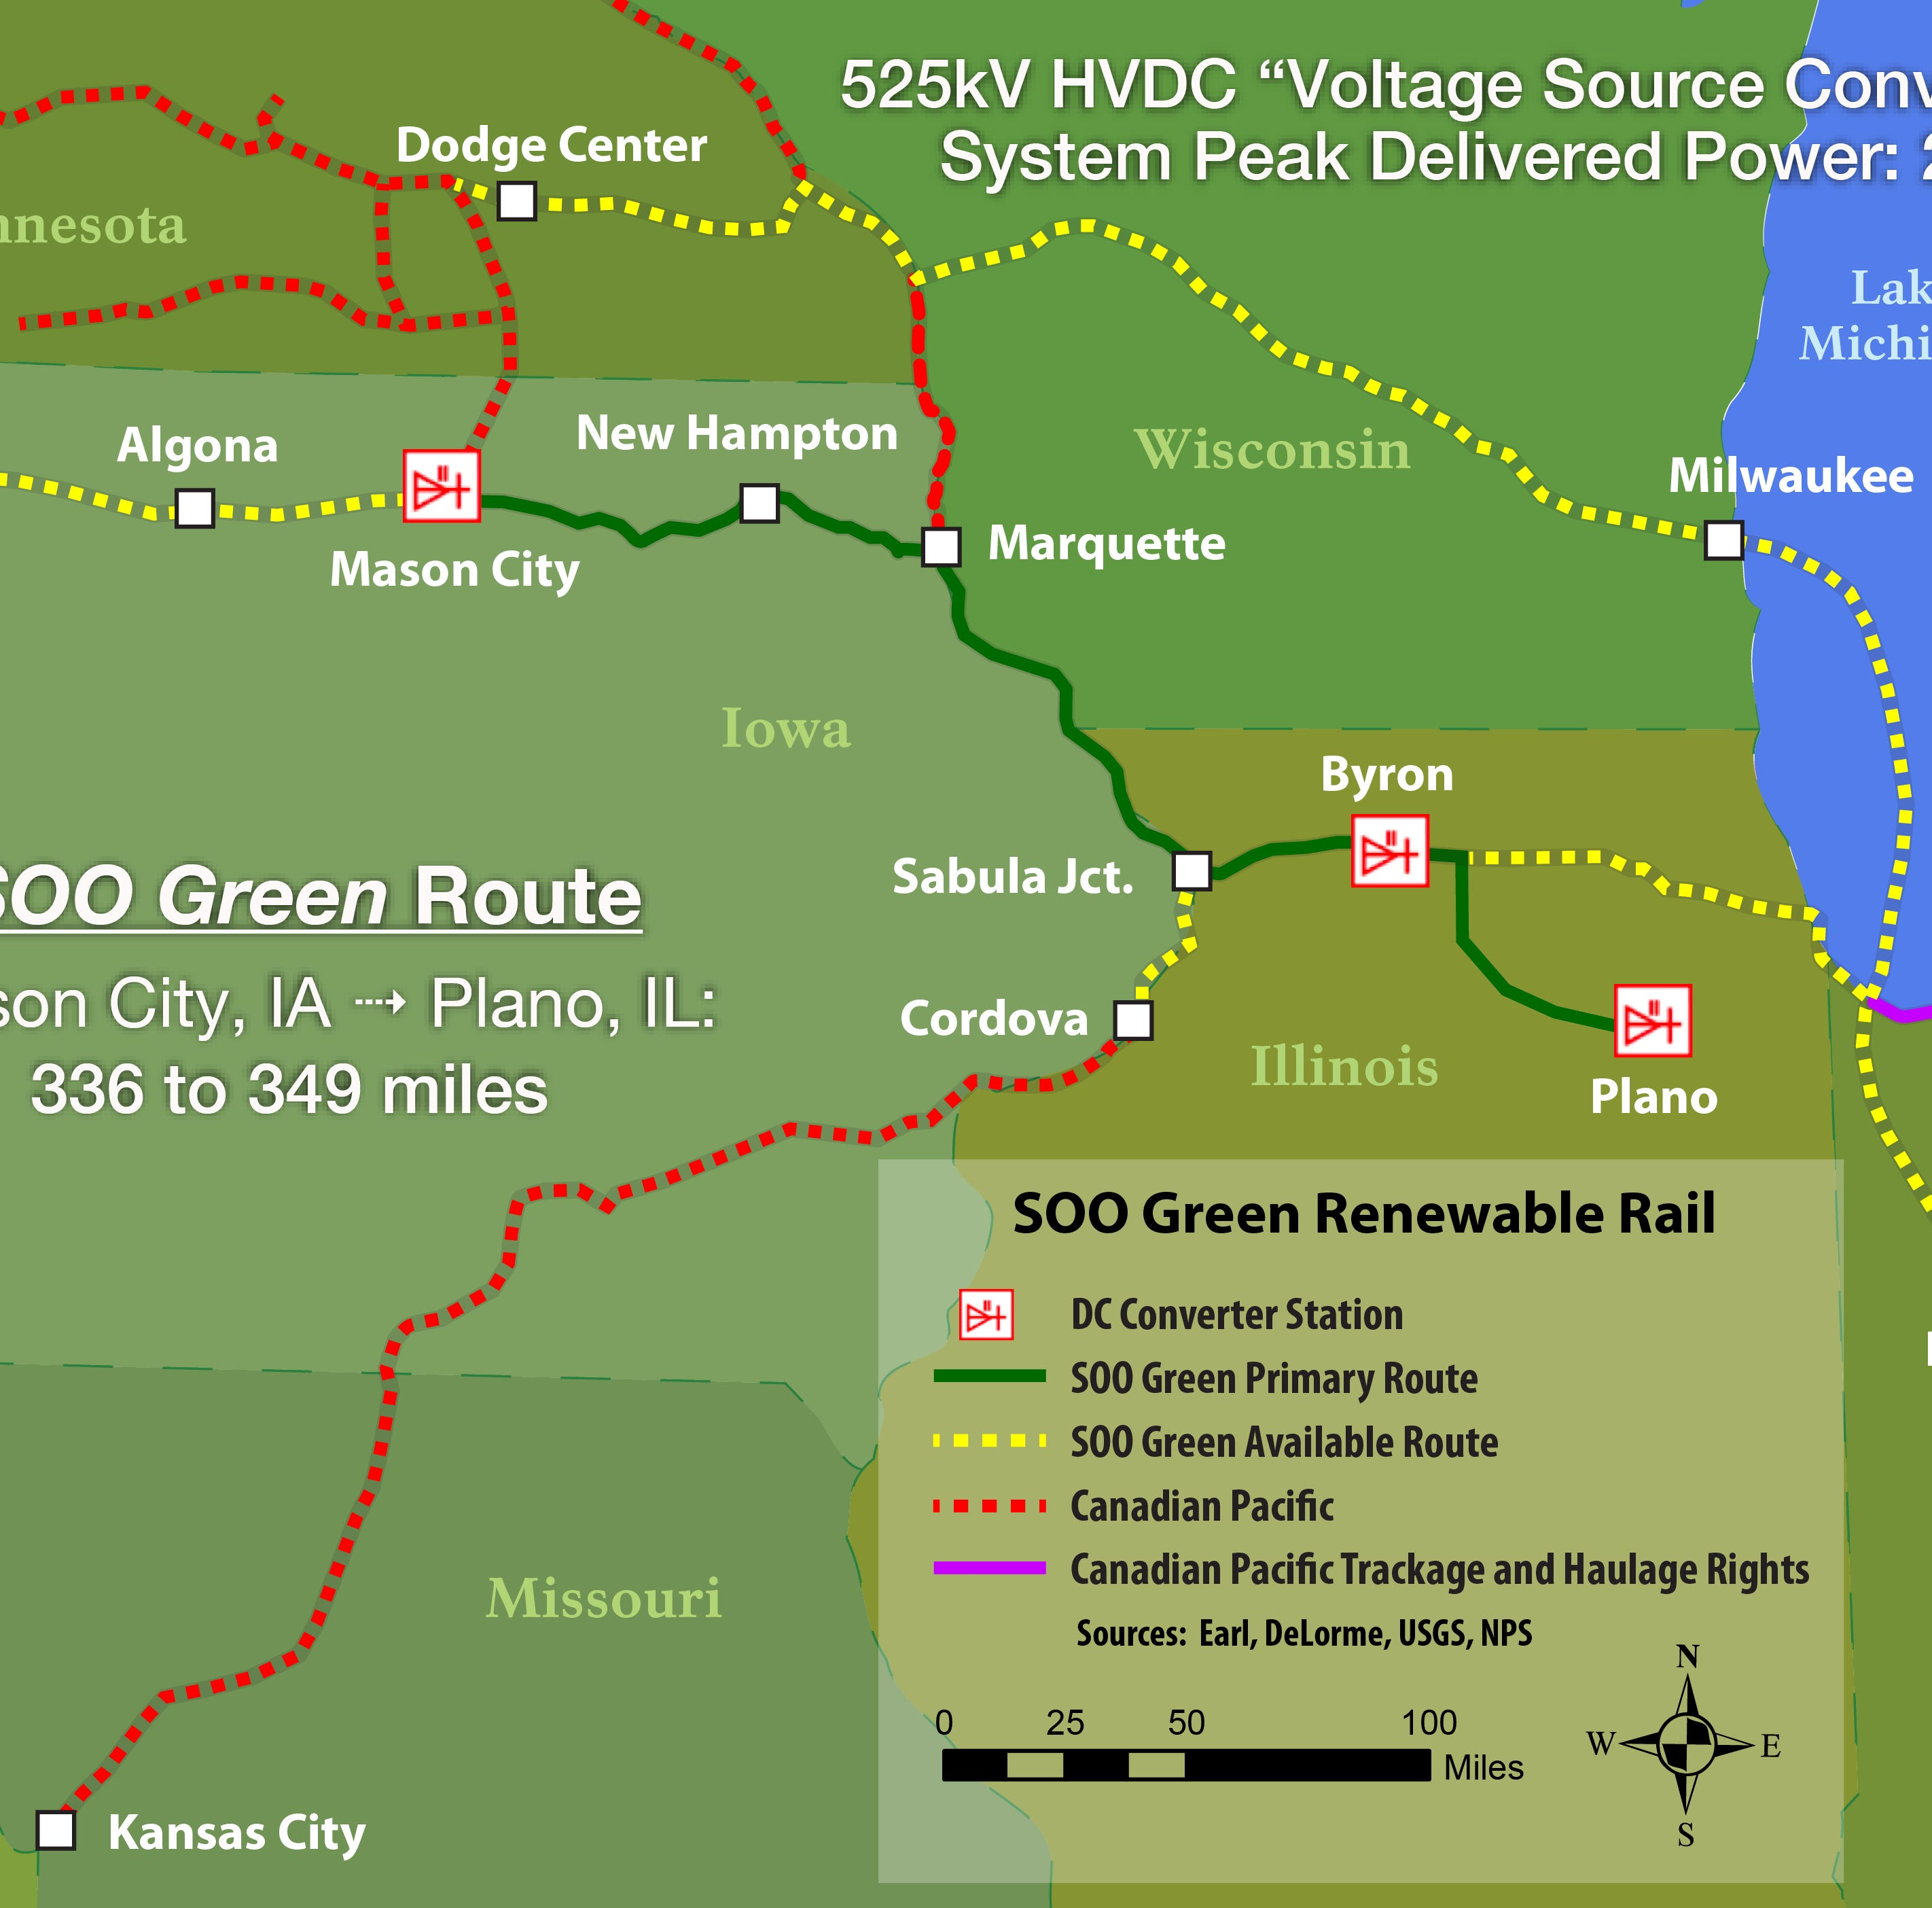 Developer proposes building a 350-mile underground transmission line to take wind from rural Iowa to Chicago